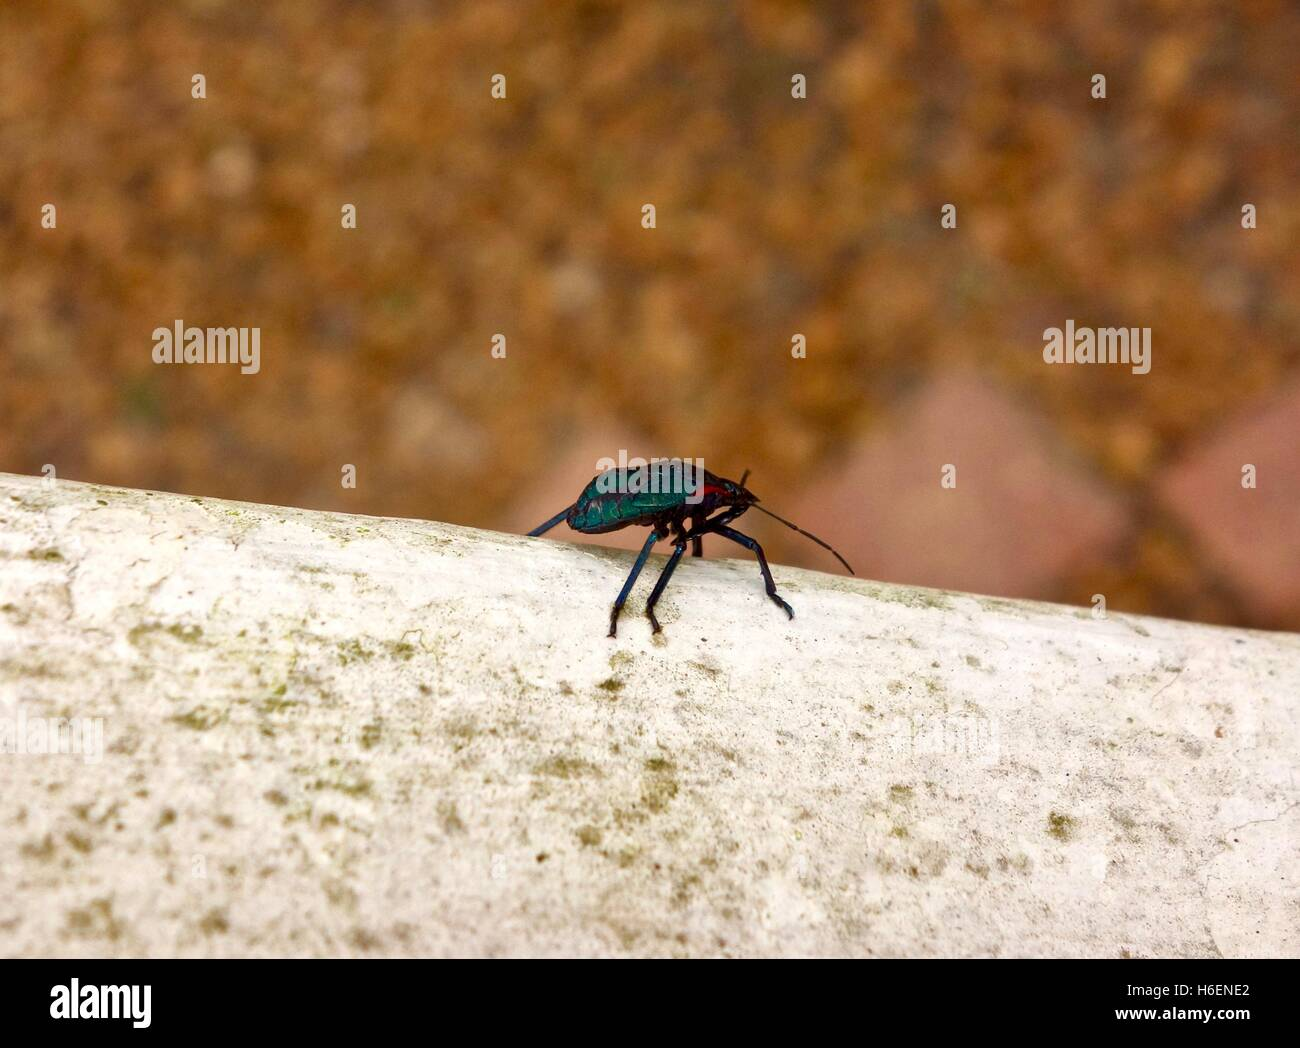 Close up of a cyan colored beetle on a hand rail. - Stock Image